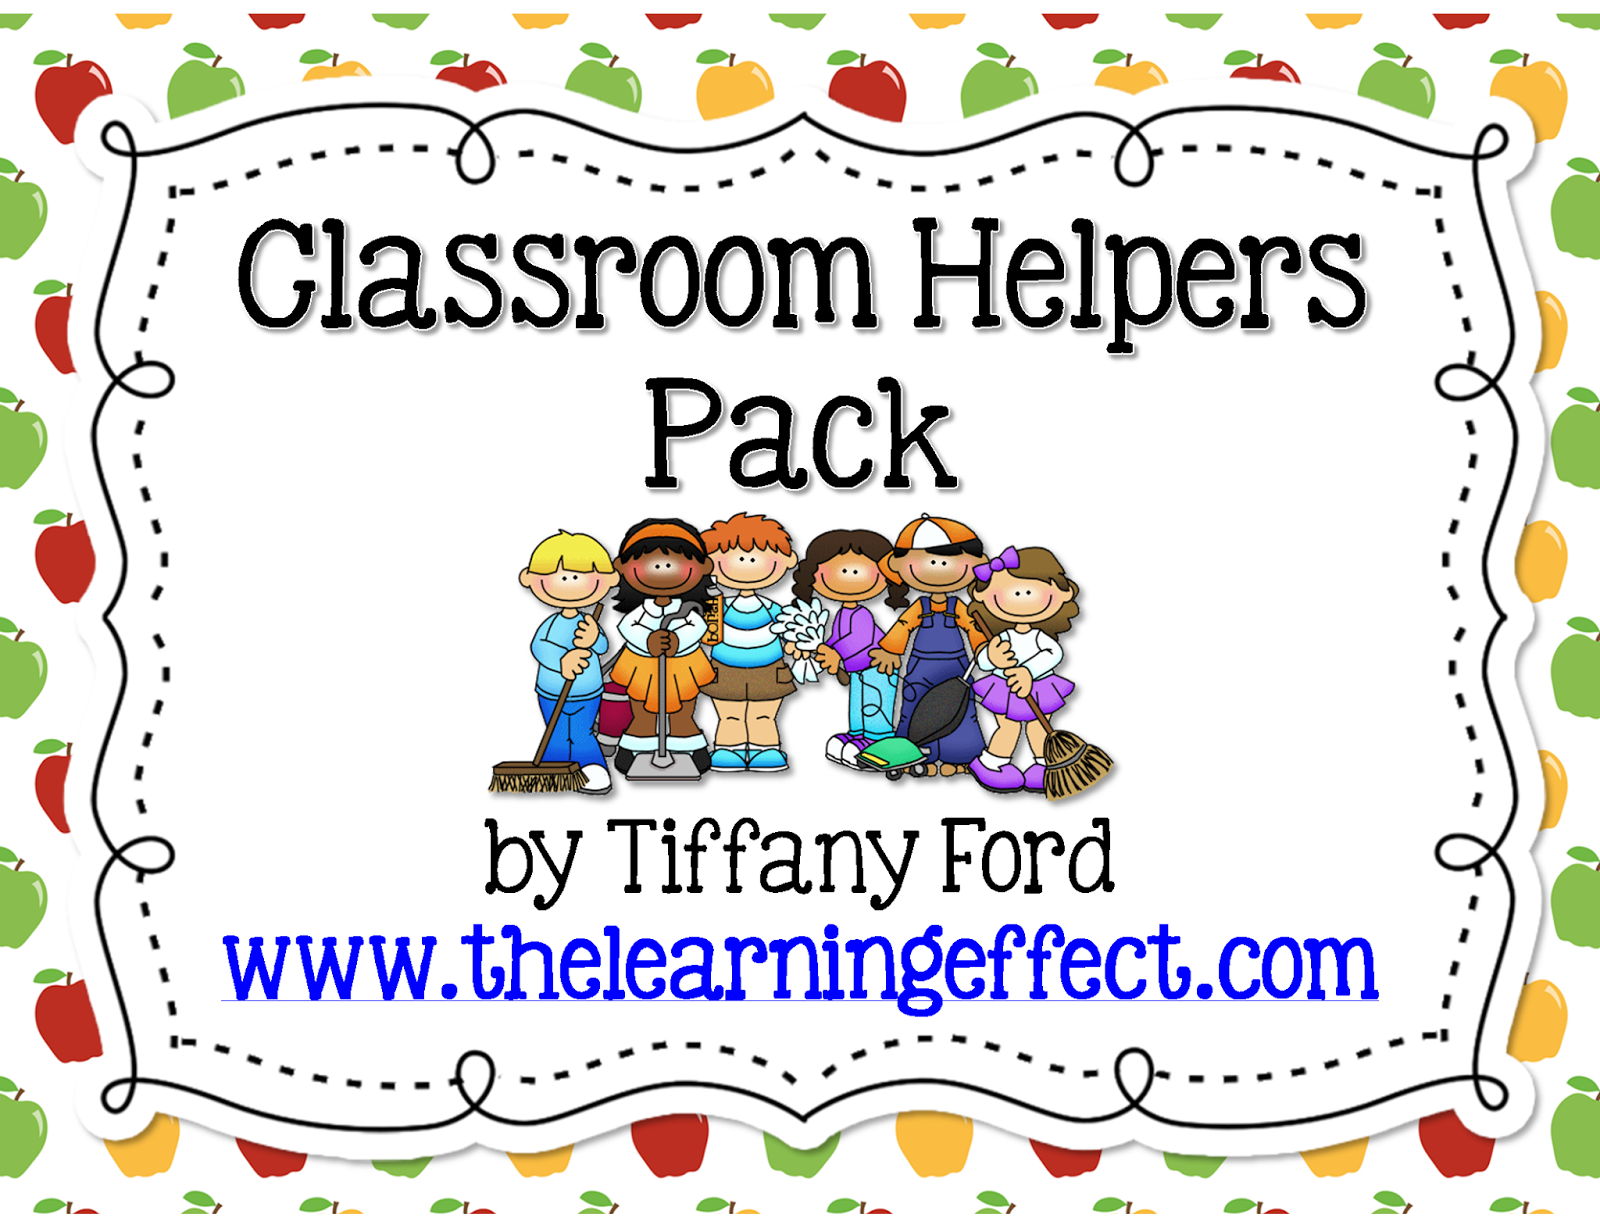 http://www.teacherspayteachers.com/Product/Classroom-Helpers-Pack-272153